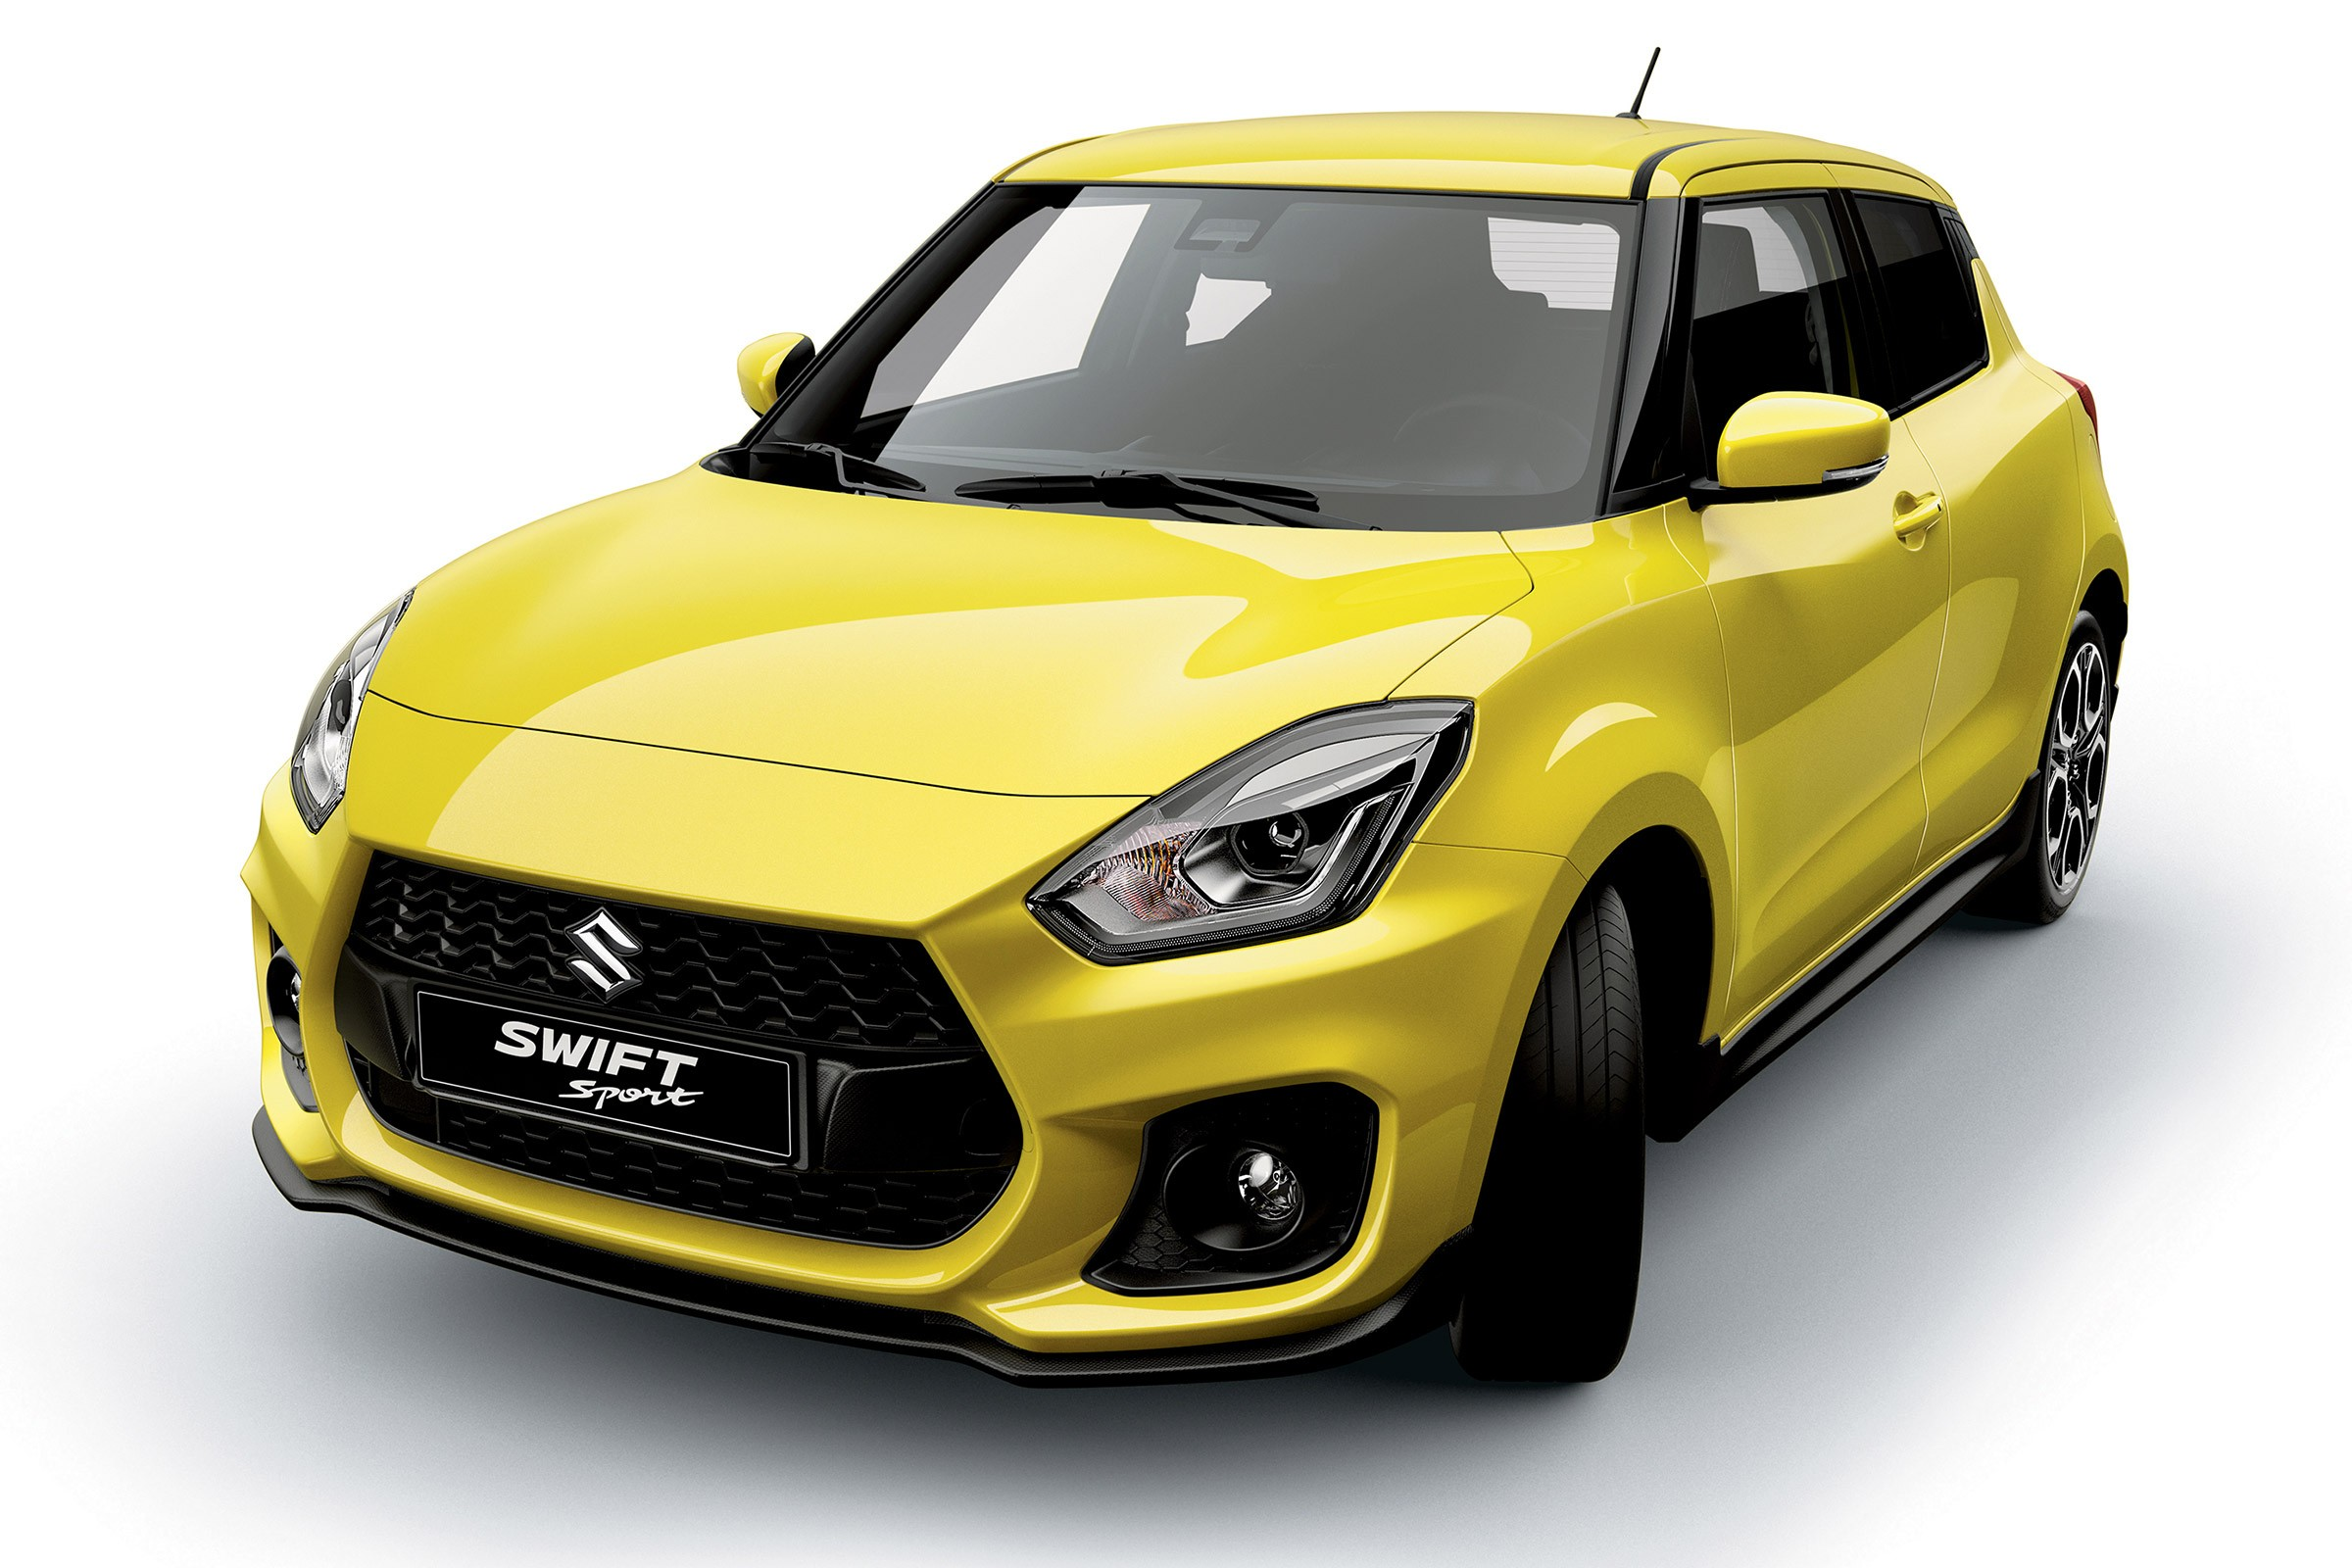 2018 suzuki swift sport previewed ahead of frankfurt motor show debut autoevolution. Black Bedroom Furniture Sets. Home Design Ideas